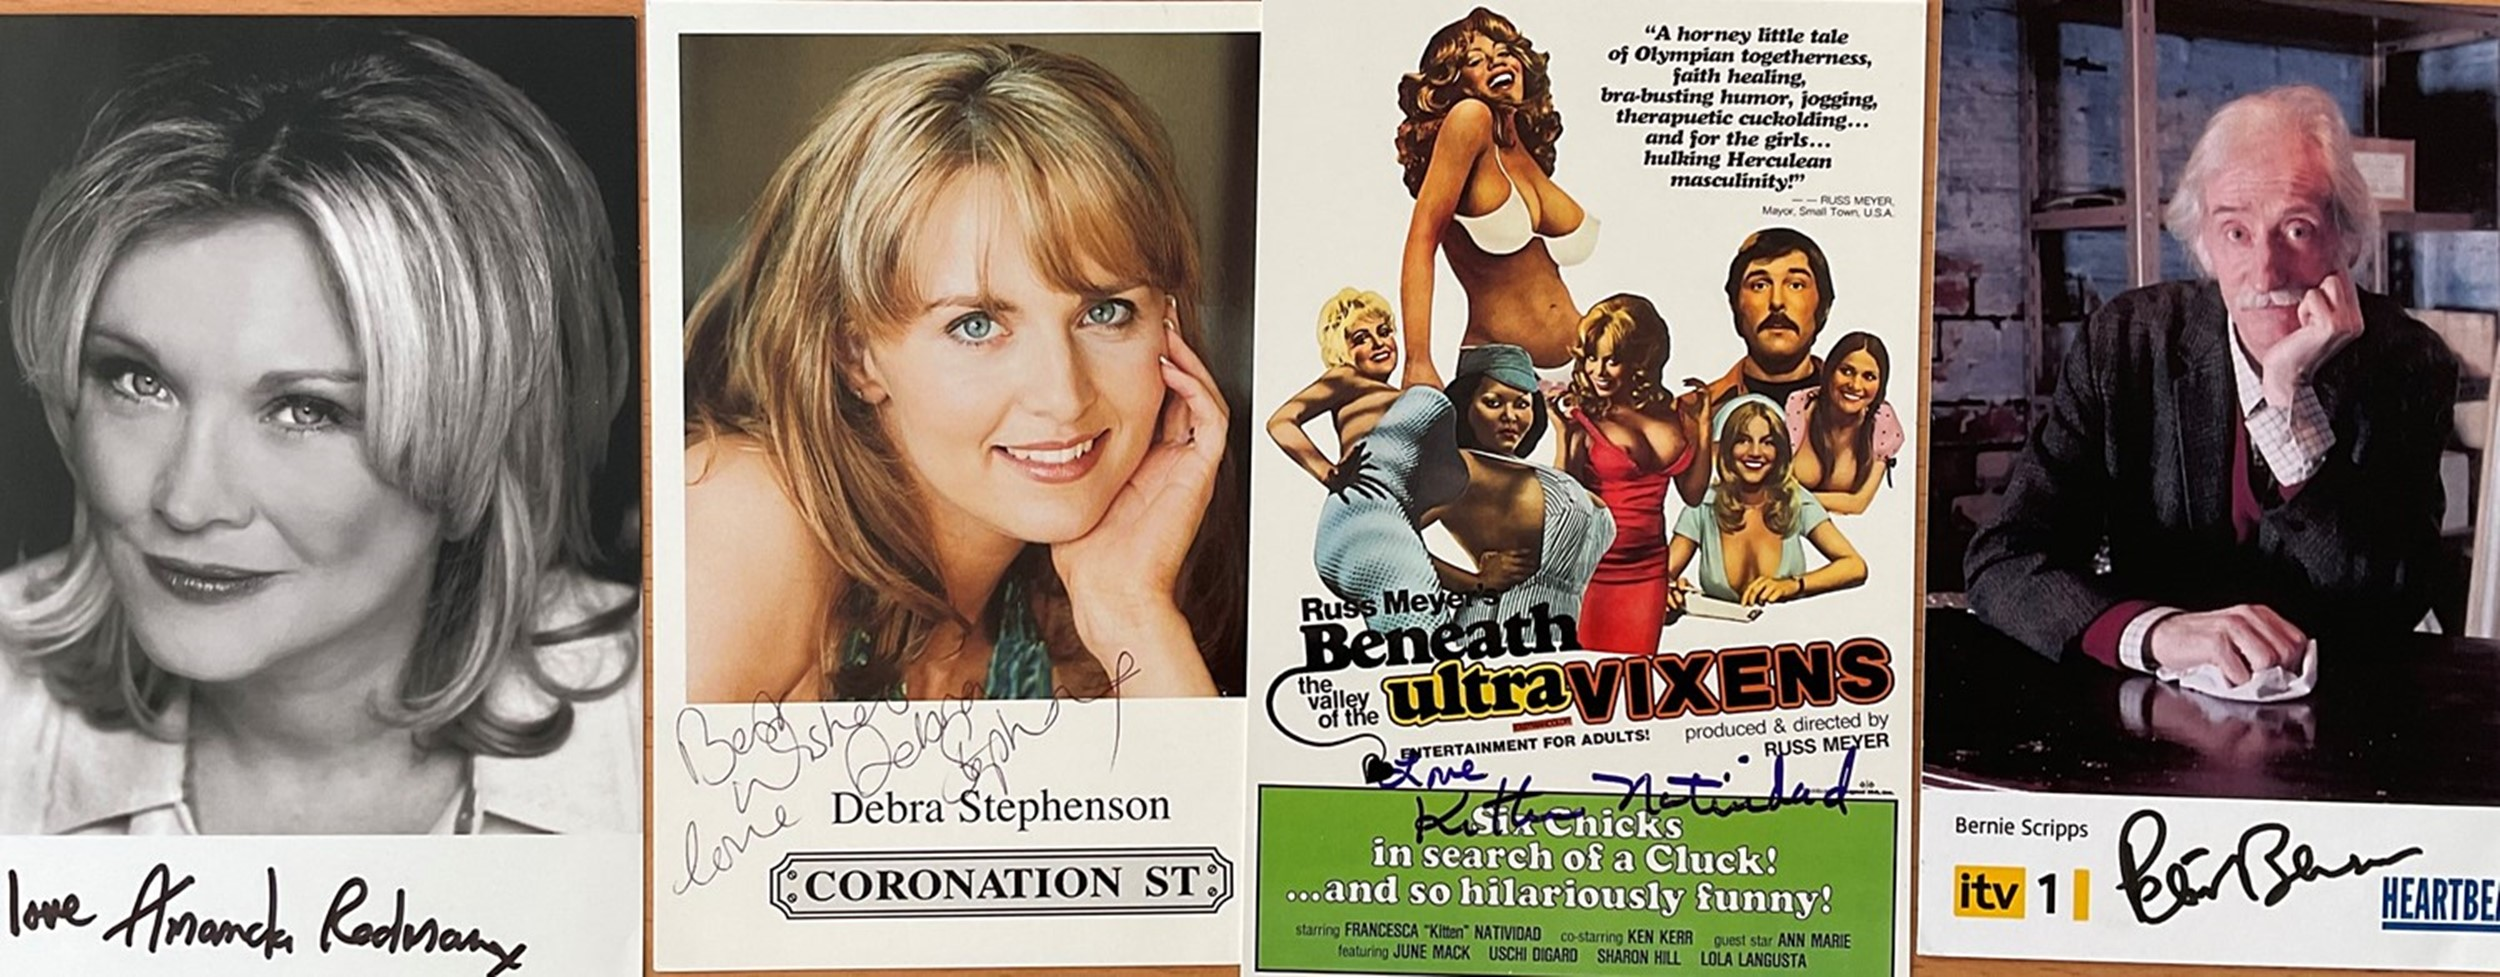 7 Signed TV and Film Stars Images Approx 6 x 3 Postcard Sized, Including Debra A Stevenson, Amanda